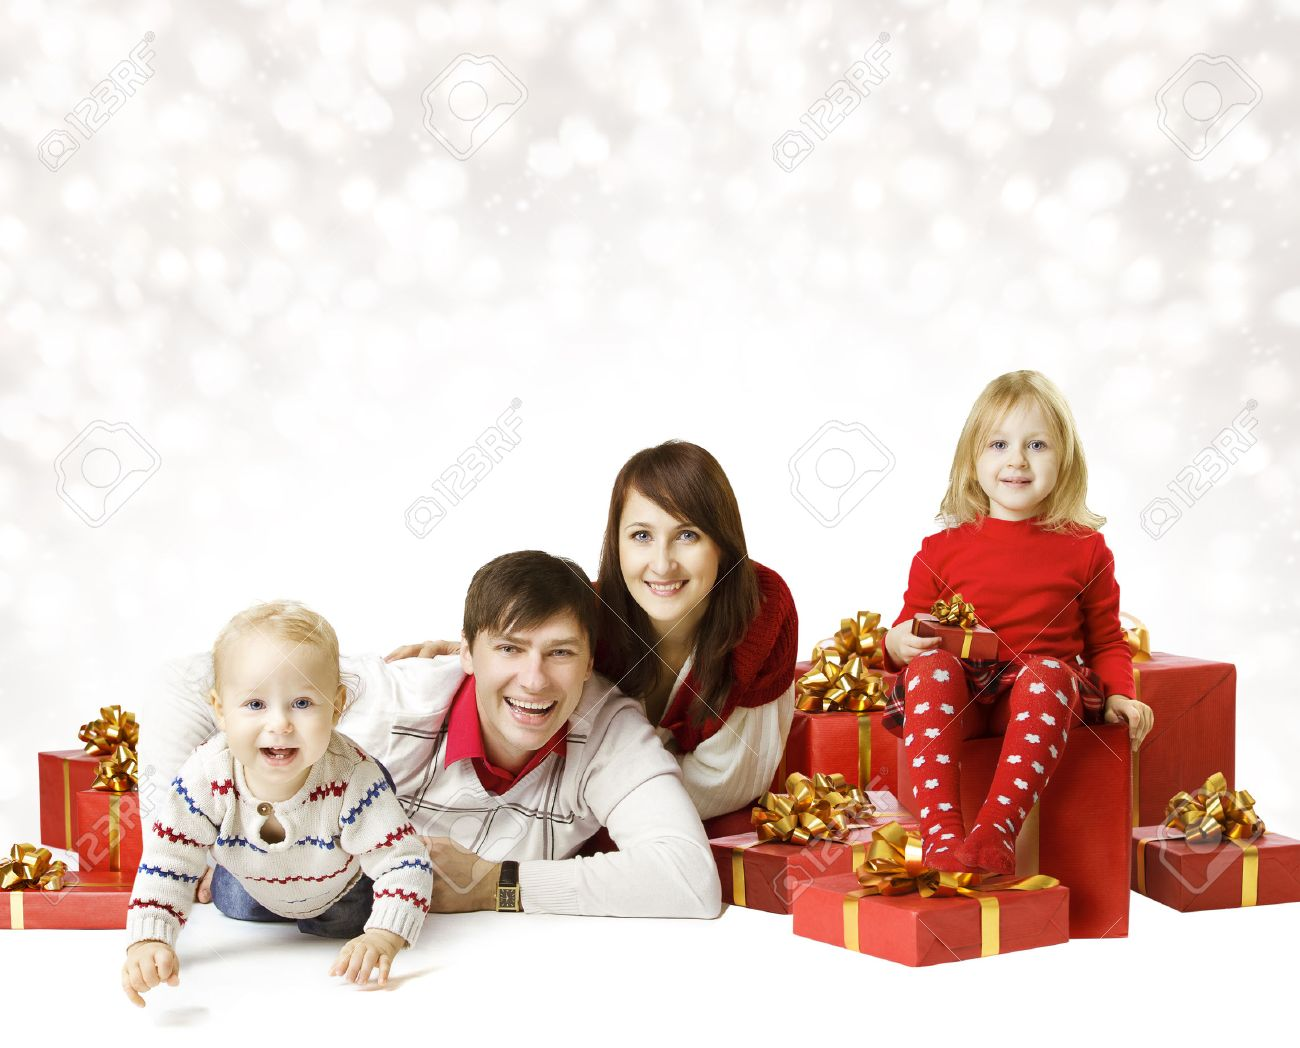 Christmas Family Portraits.Christmas Family Portrait Over White Background Kid And Baby